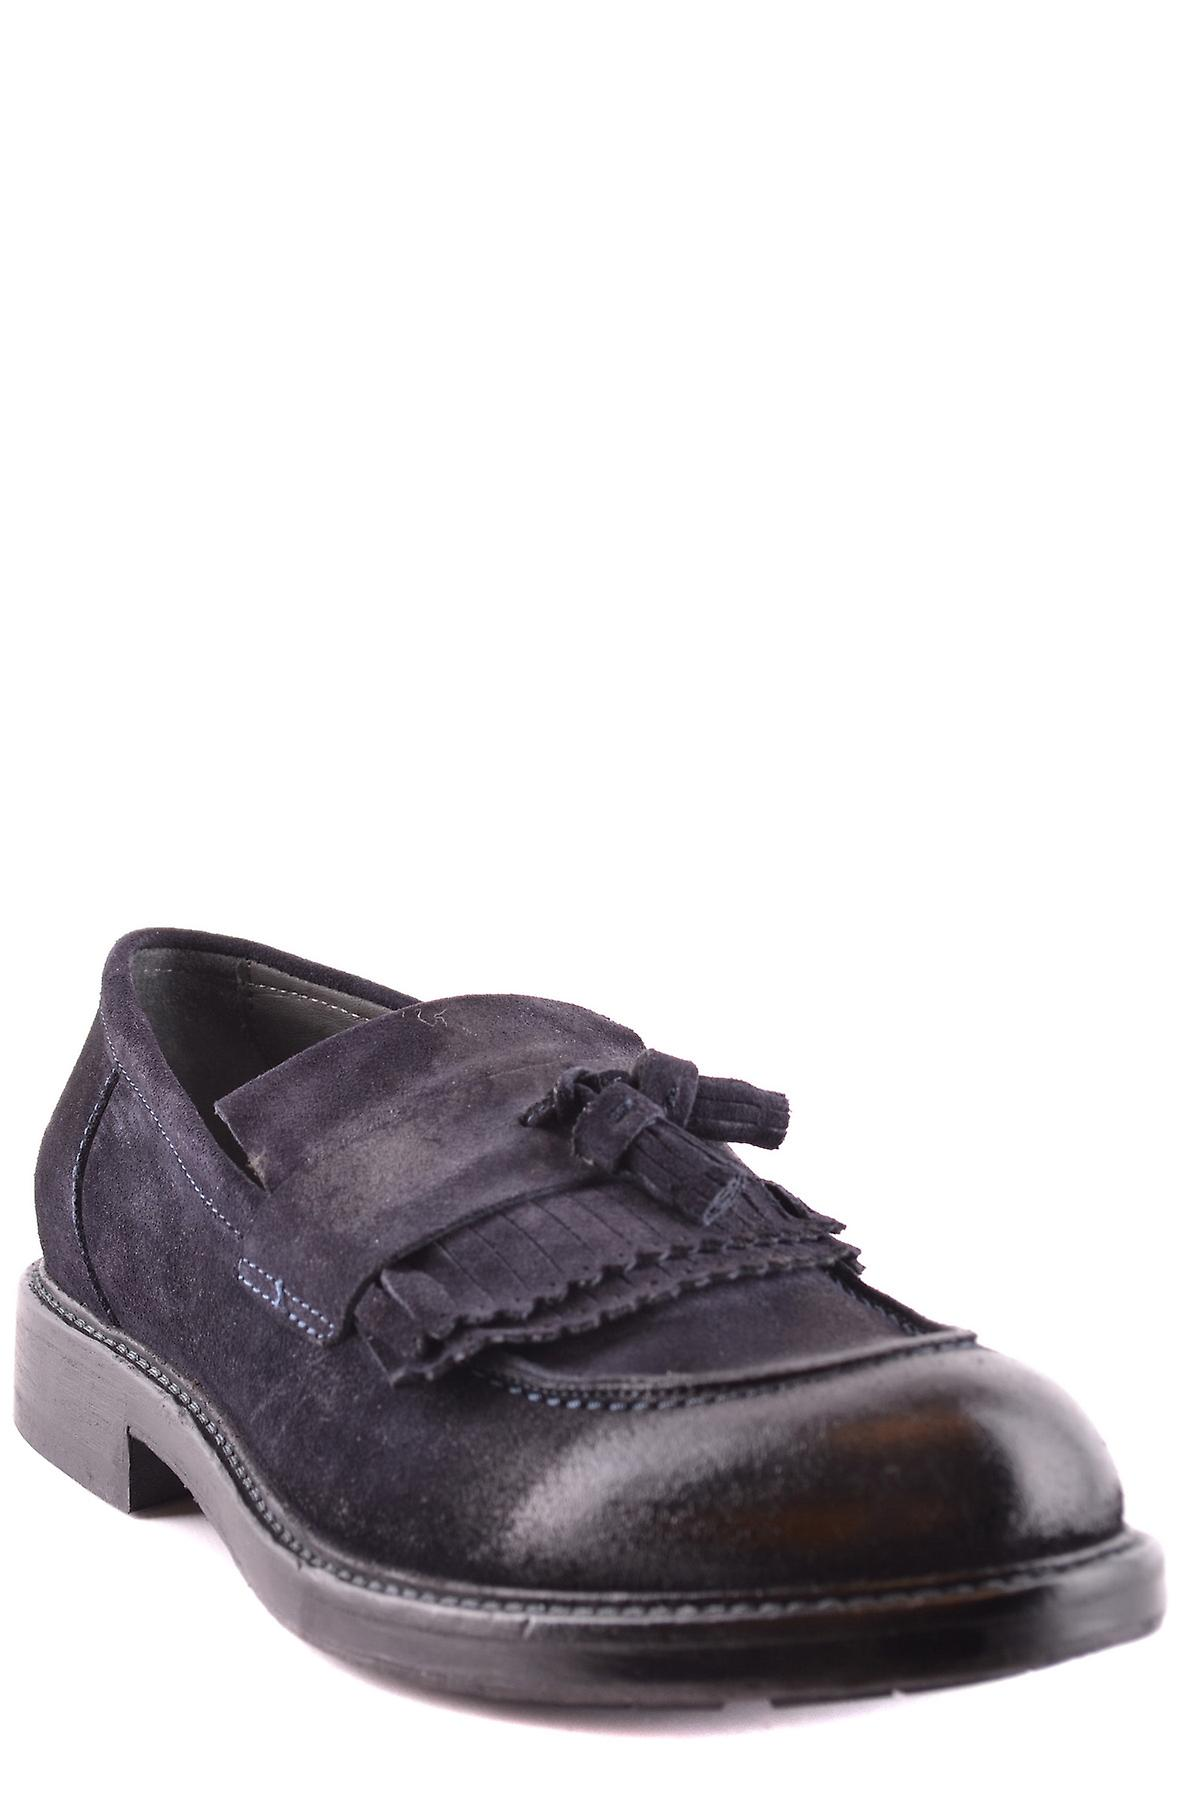 Wexford Ezbc302001 Men-apos;s Blue Suede Loafers